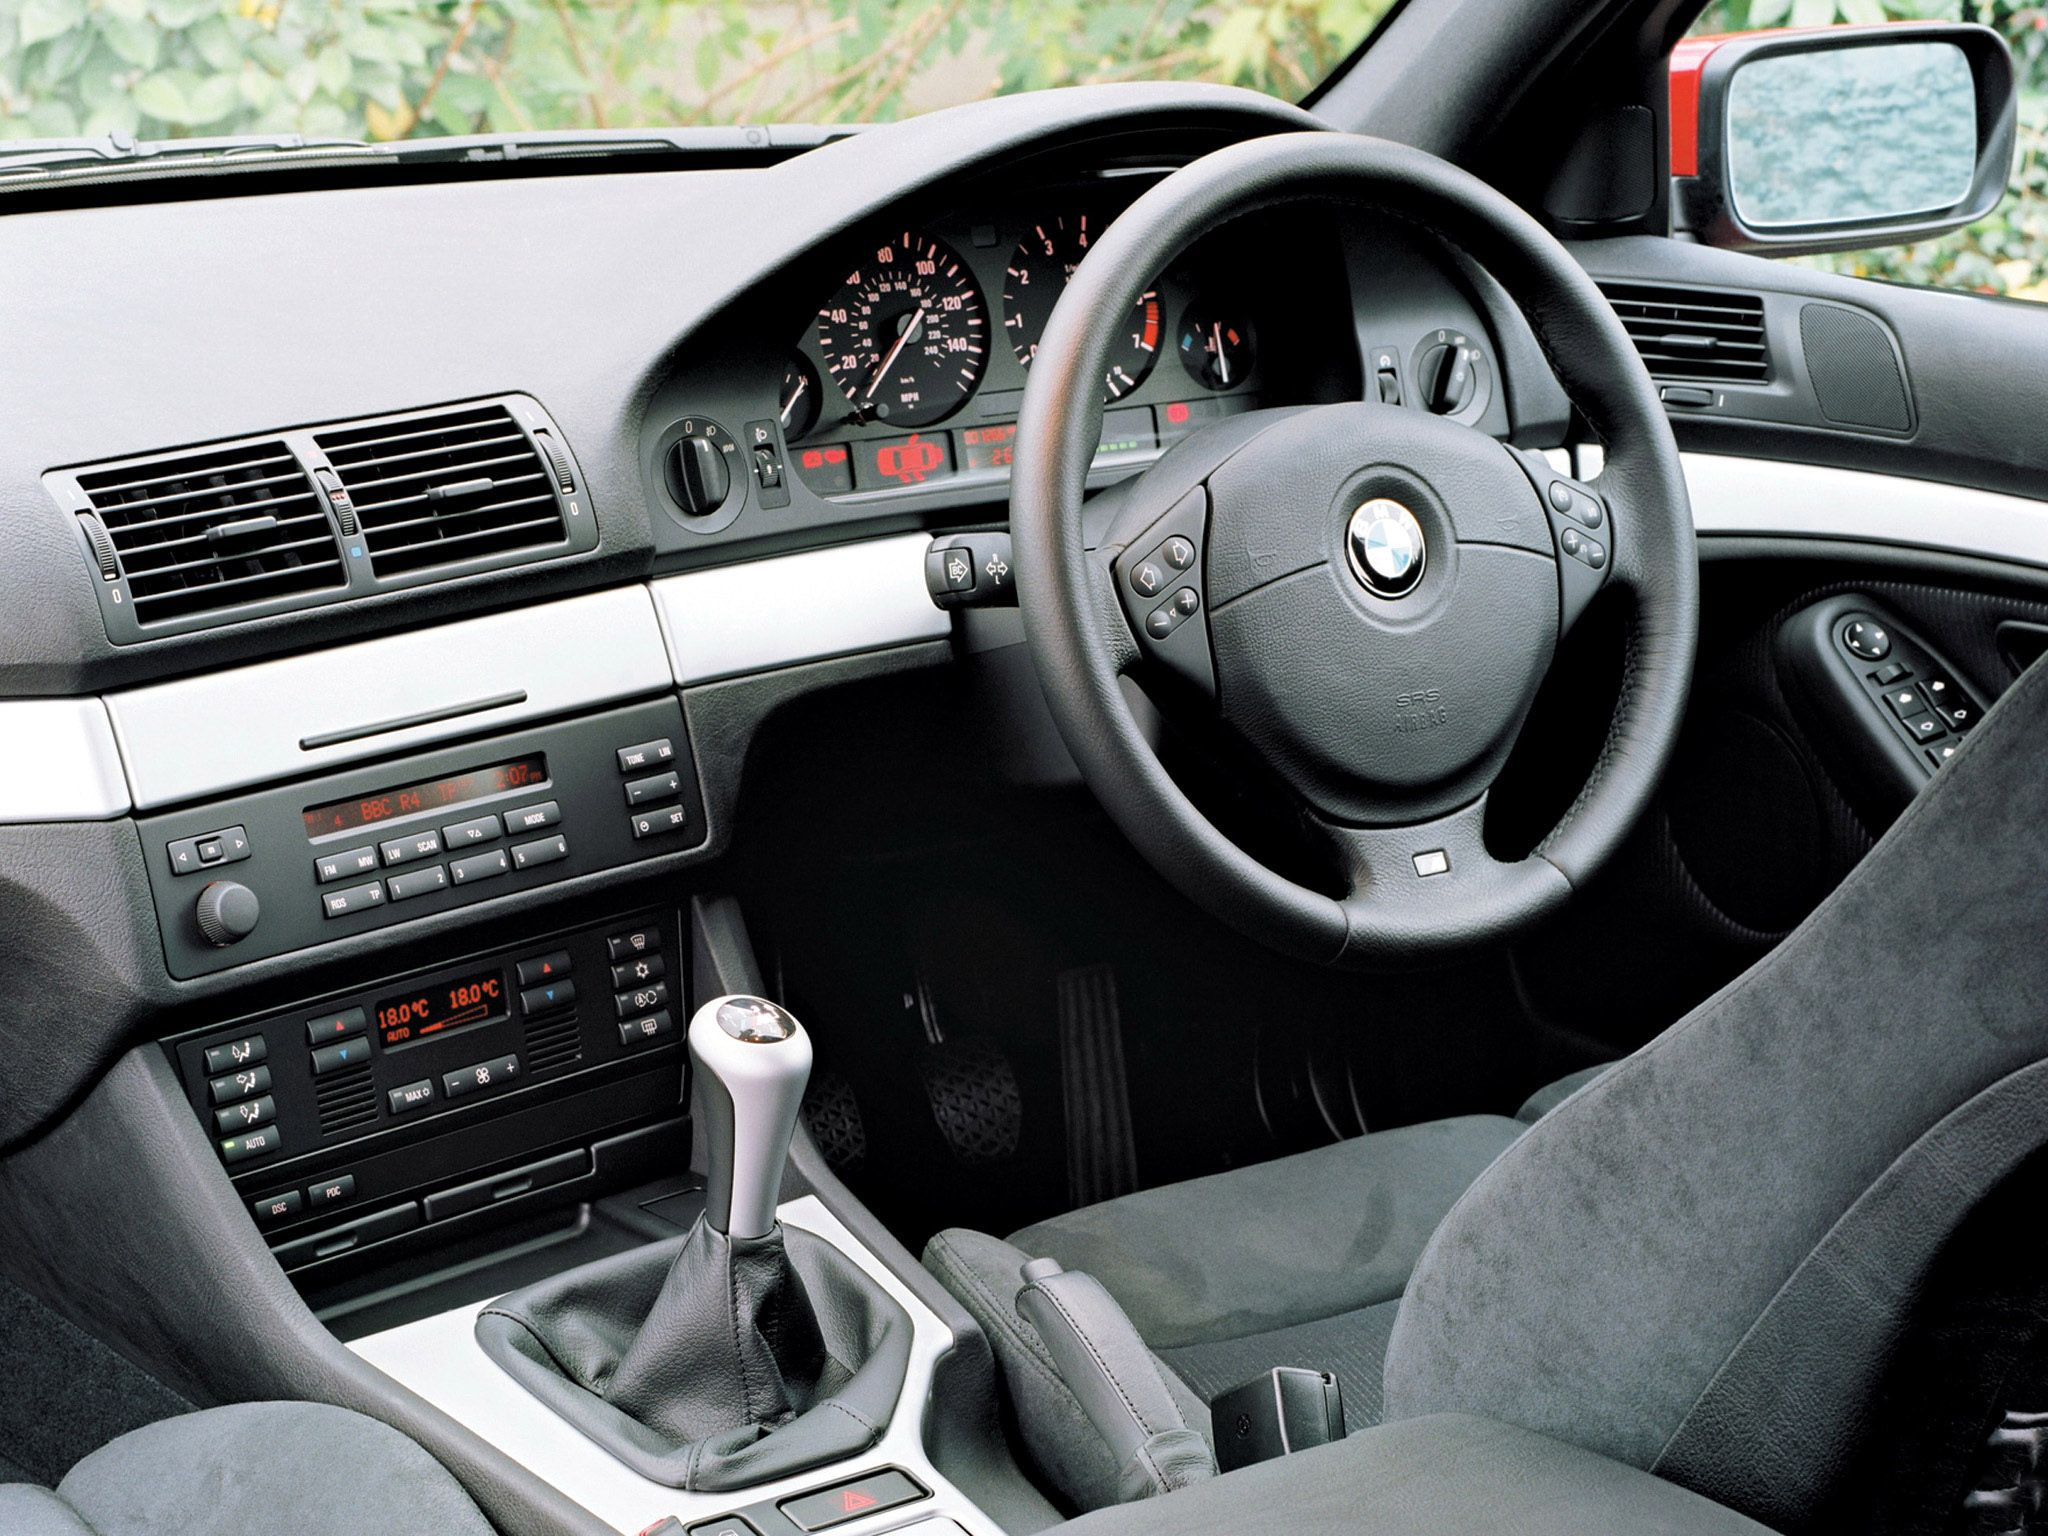 BMW e39 525i  BMW e39  Pinterest  Bmw e39 BMW and Bmw e39 touring